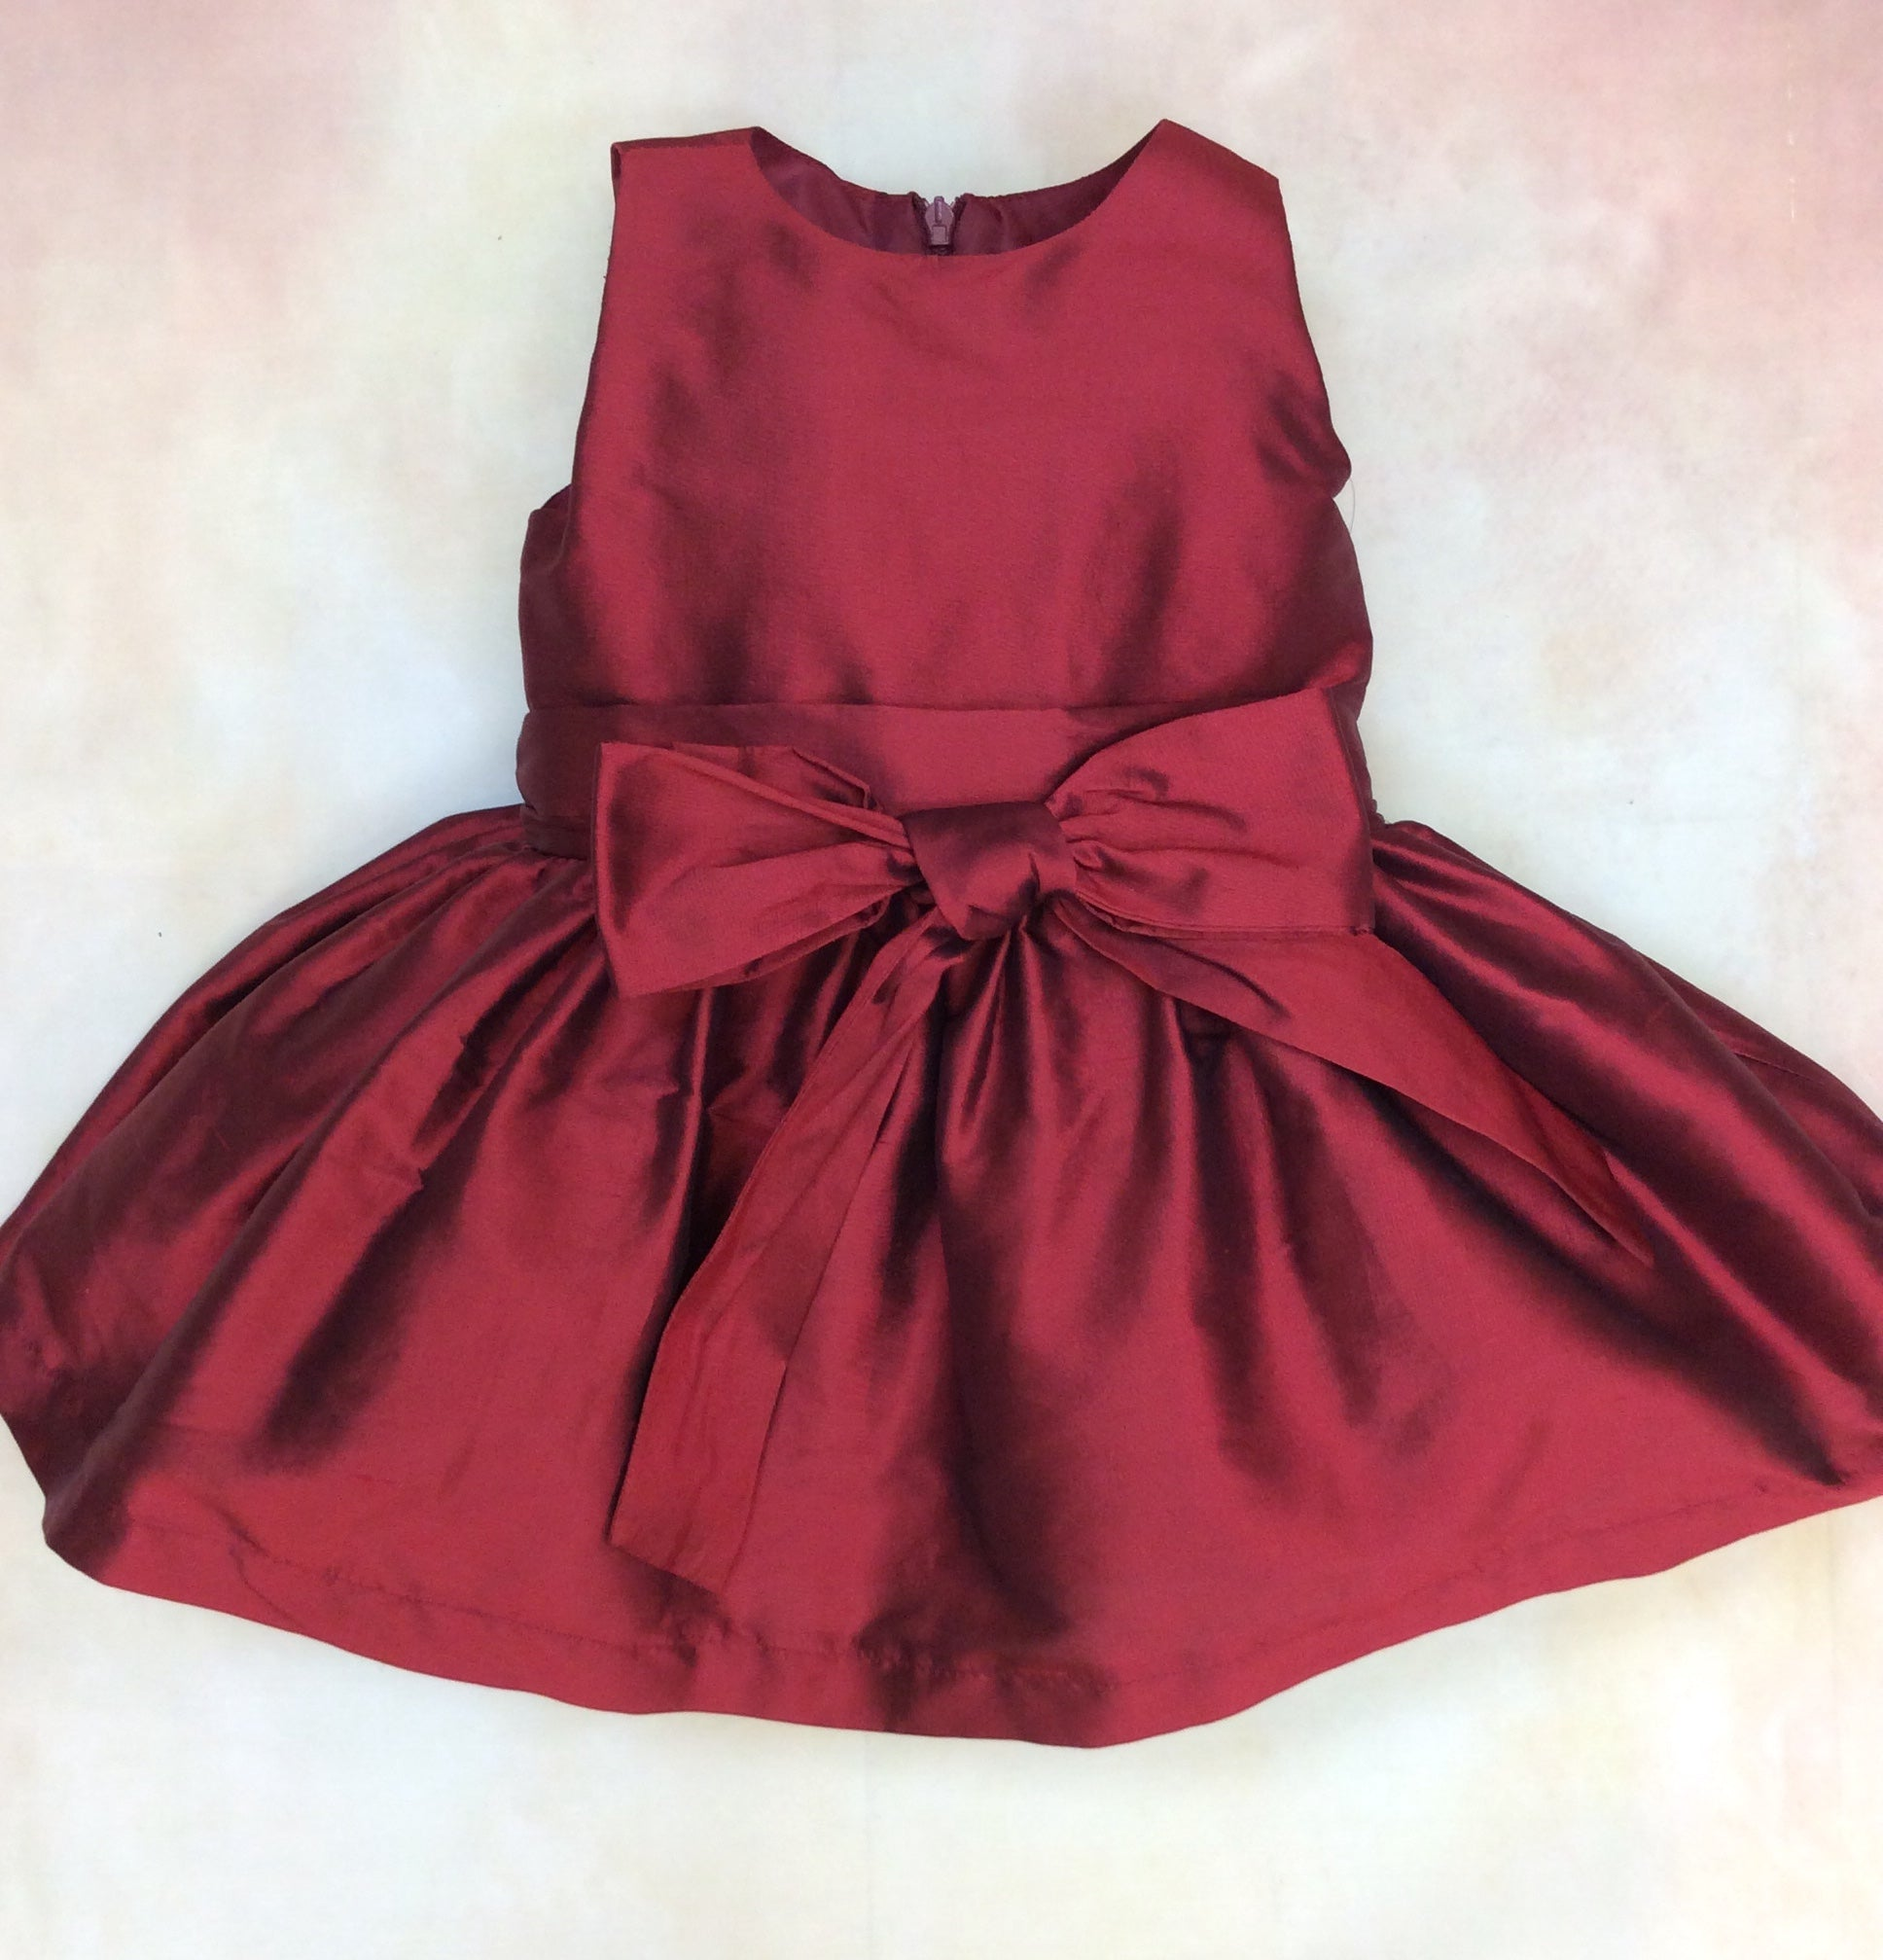 BCIC3550RD Girls Silk Red Holiday Dress Bow Front - Nenes Lullaby Boutique Inc